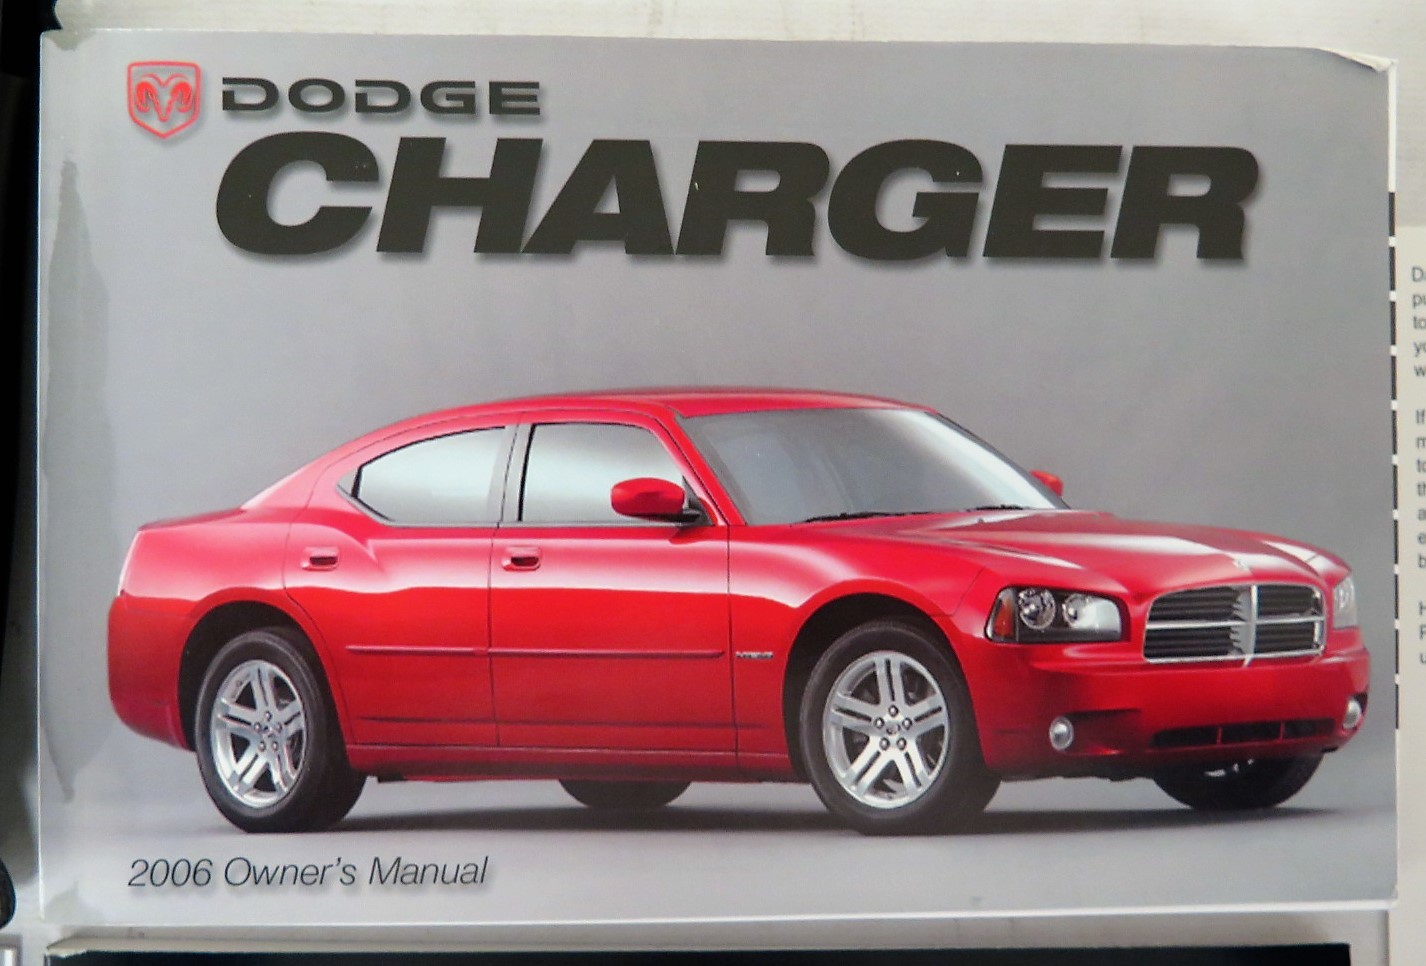 2006 dodge charger owners manual book bashful yak rh bashfulyak com 2006 dodge charger owners manual pdf 2006 dodge charger rt owners manual